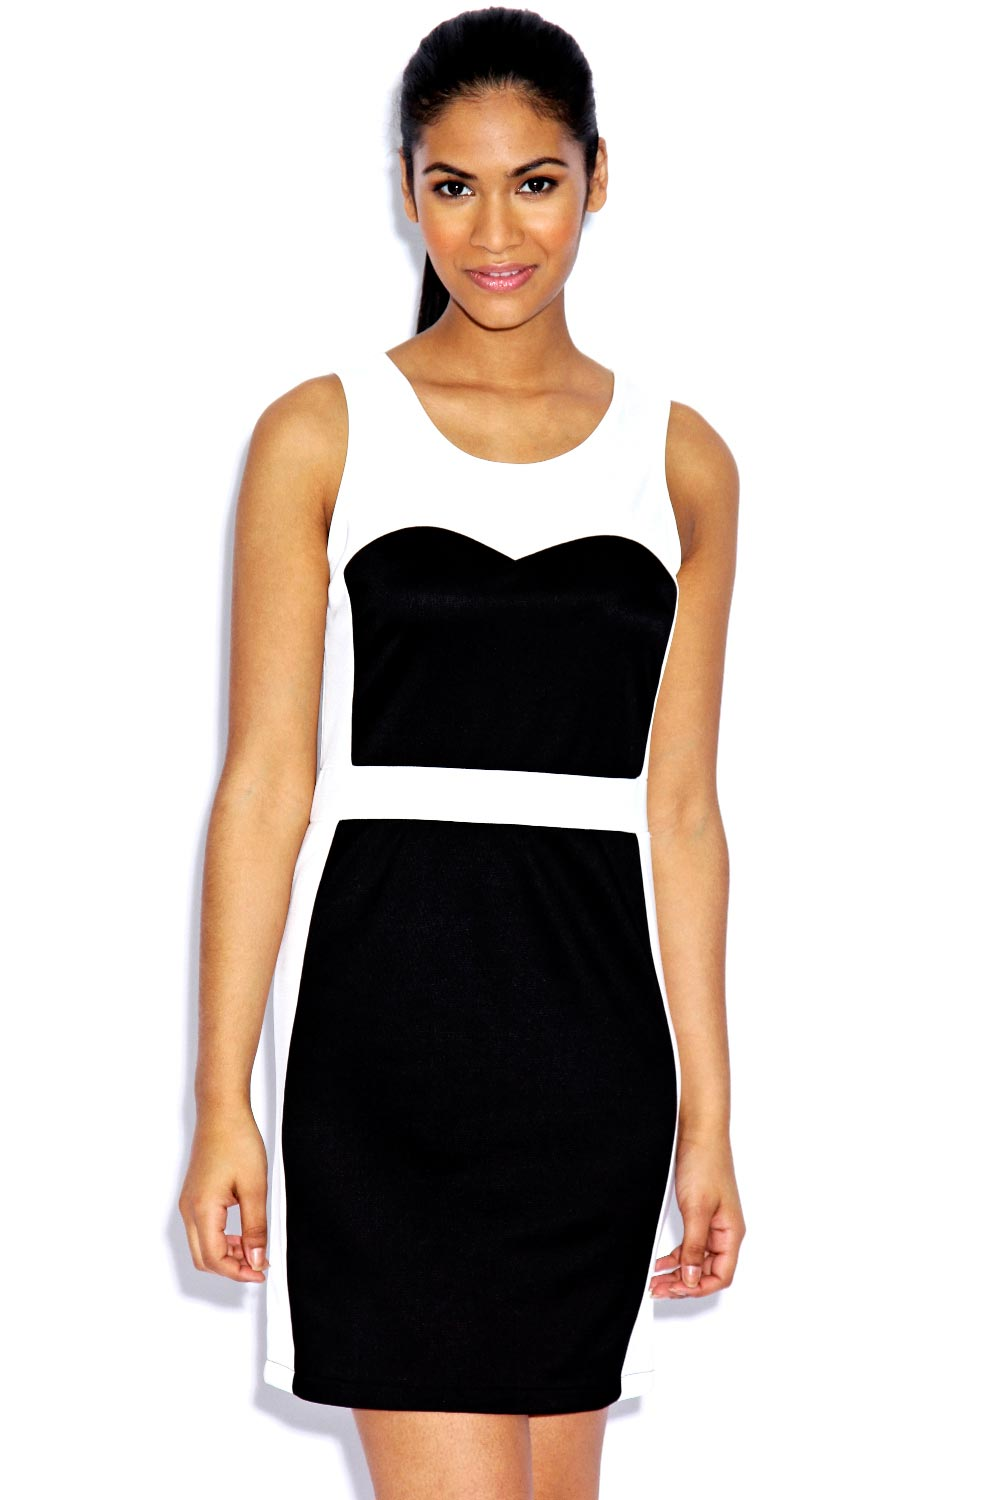 Boohoo-Hatty-Monochrome-Sweetheart-Bodycon-Dress-BNWT